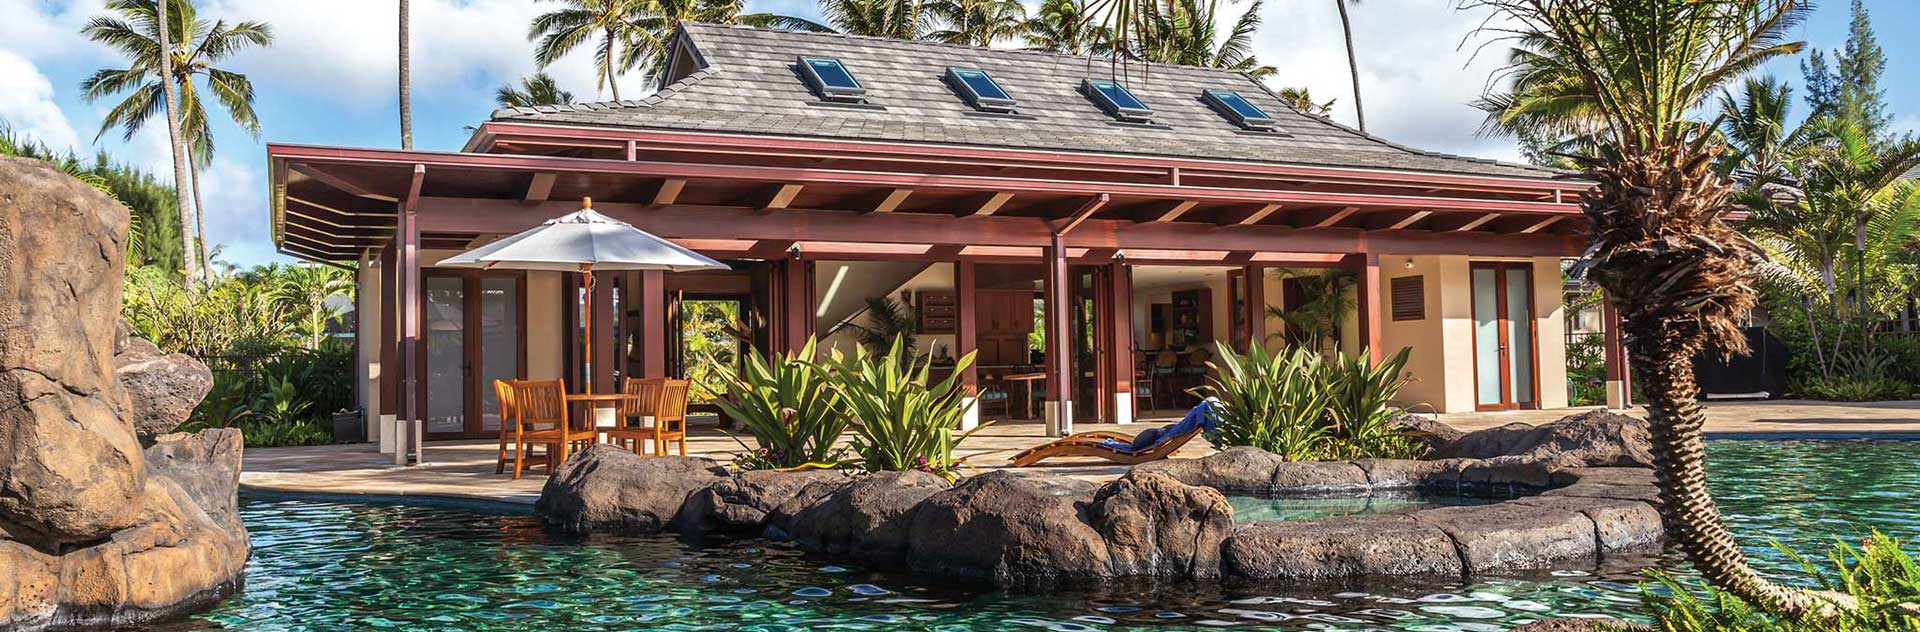 Mele Komo - Hawaii Destination Resort Living